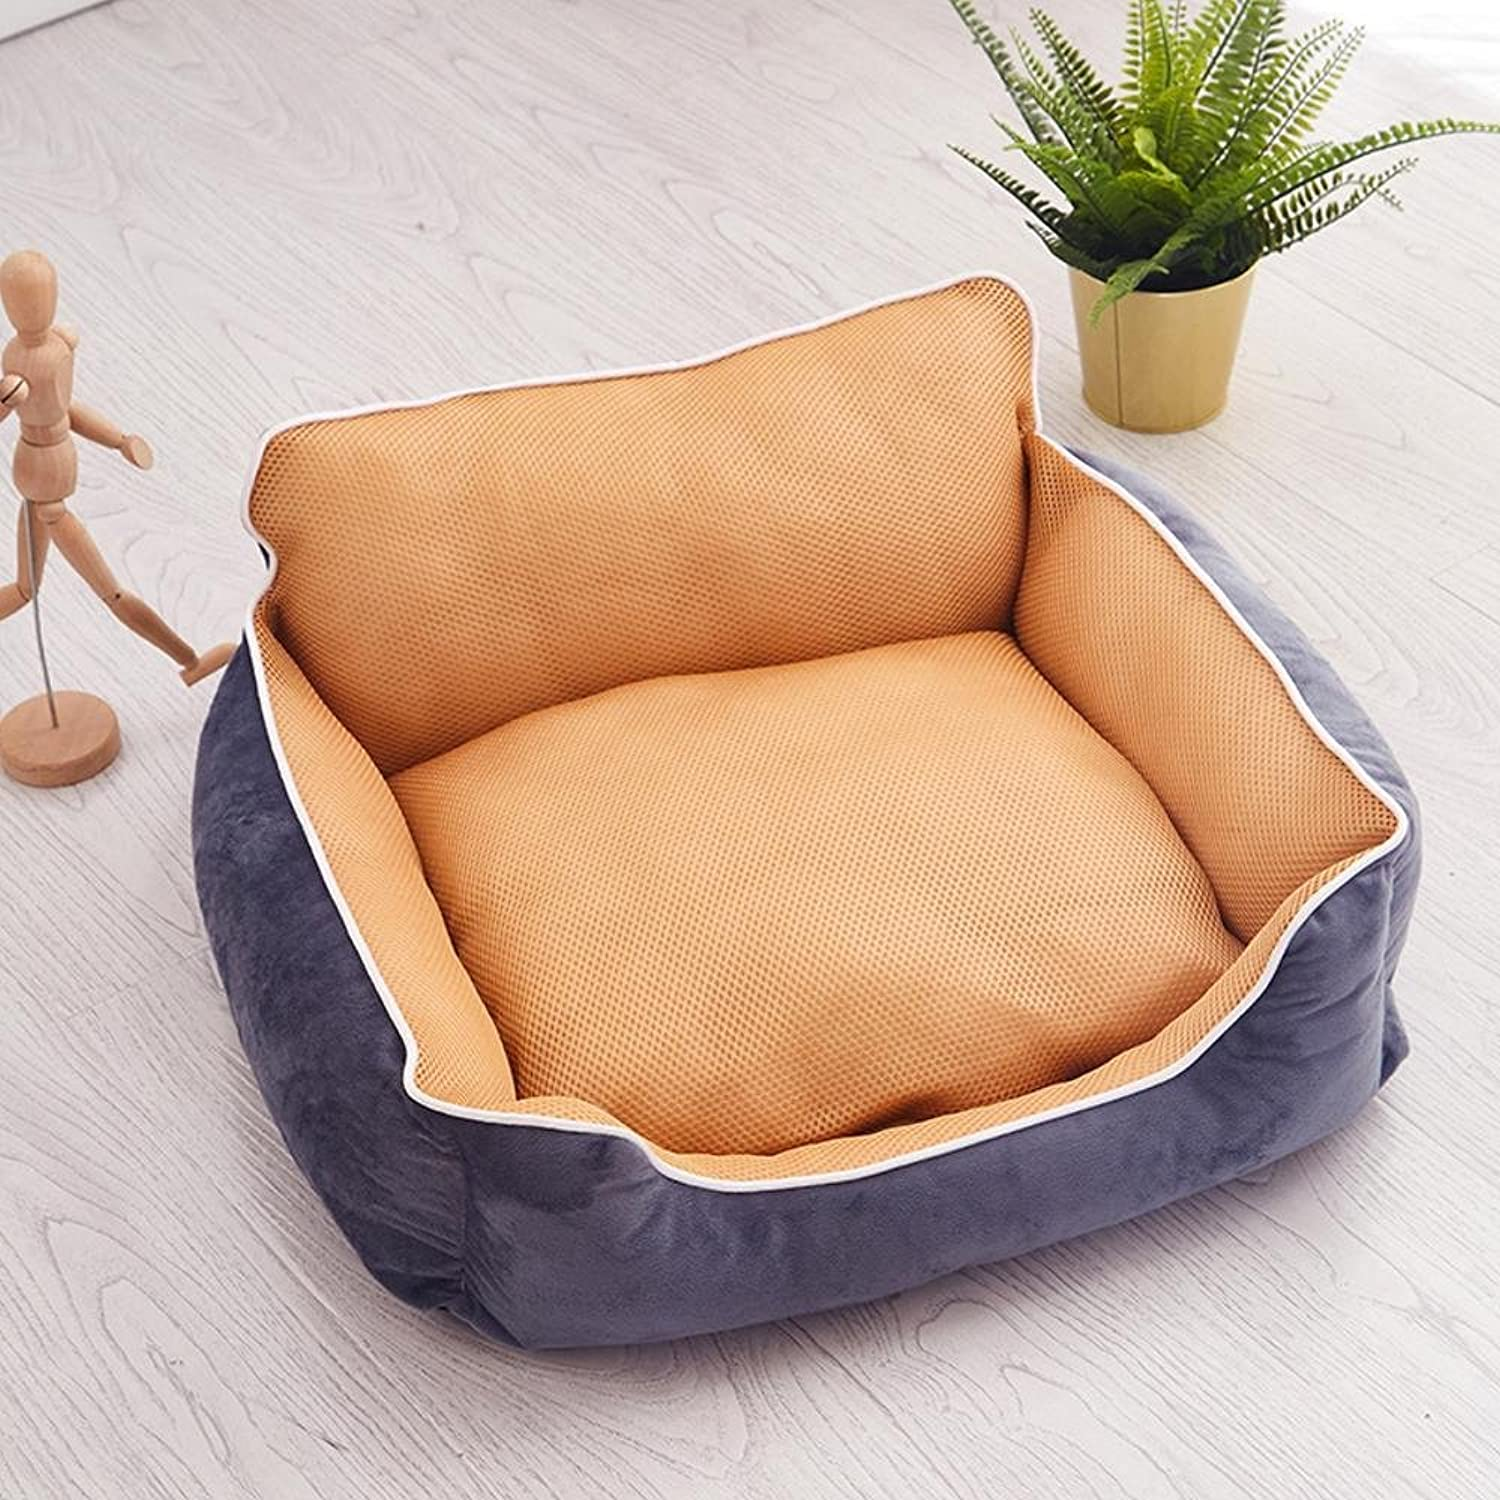 BiuTeFang Pet Bolster Dog Bed Comfort Pet Kennel mat resistant to washable